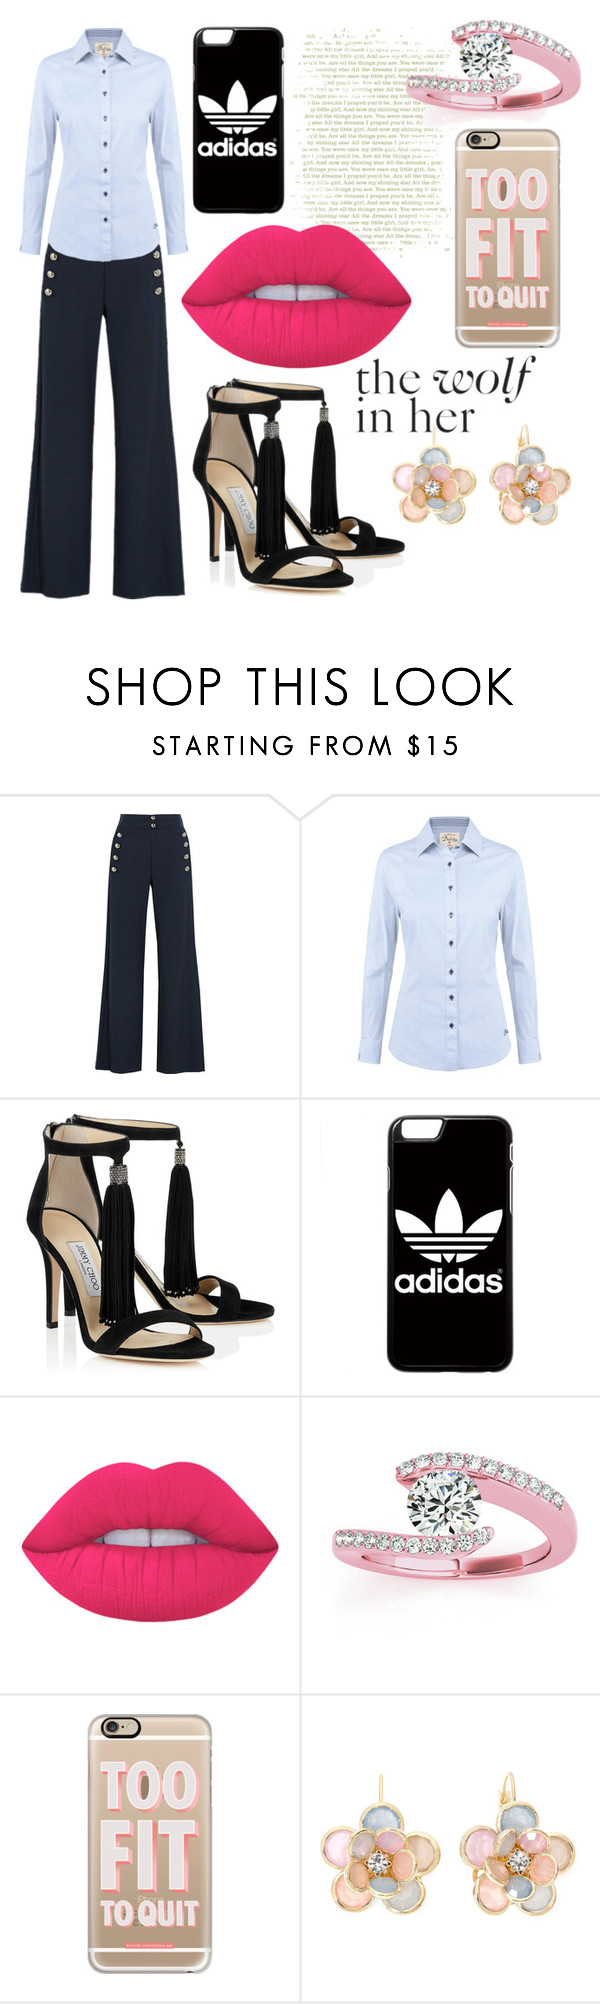 """""""without merit"""" by soidi-illis ❤ liked on Polyvore featuring Chloé, DUBARRY, adidas, Lime Crime, Allurez, Casetify and Mixit"""